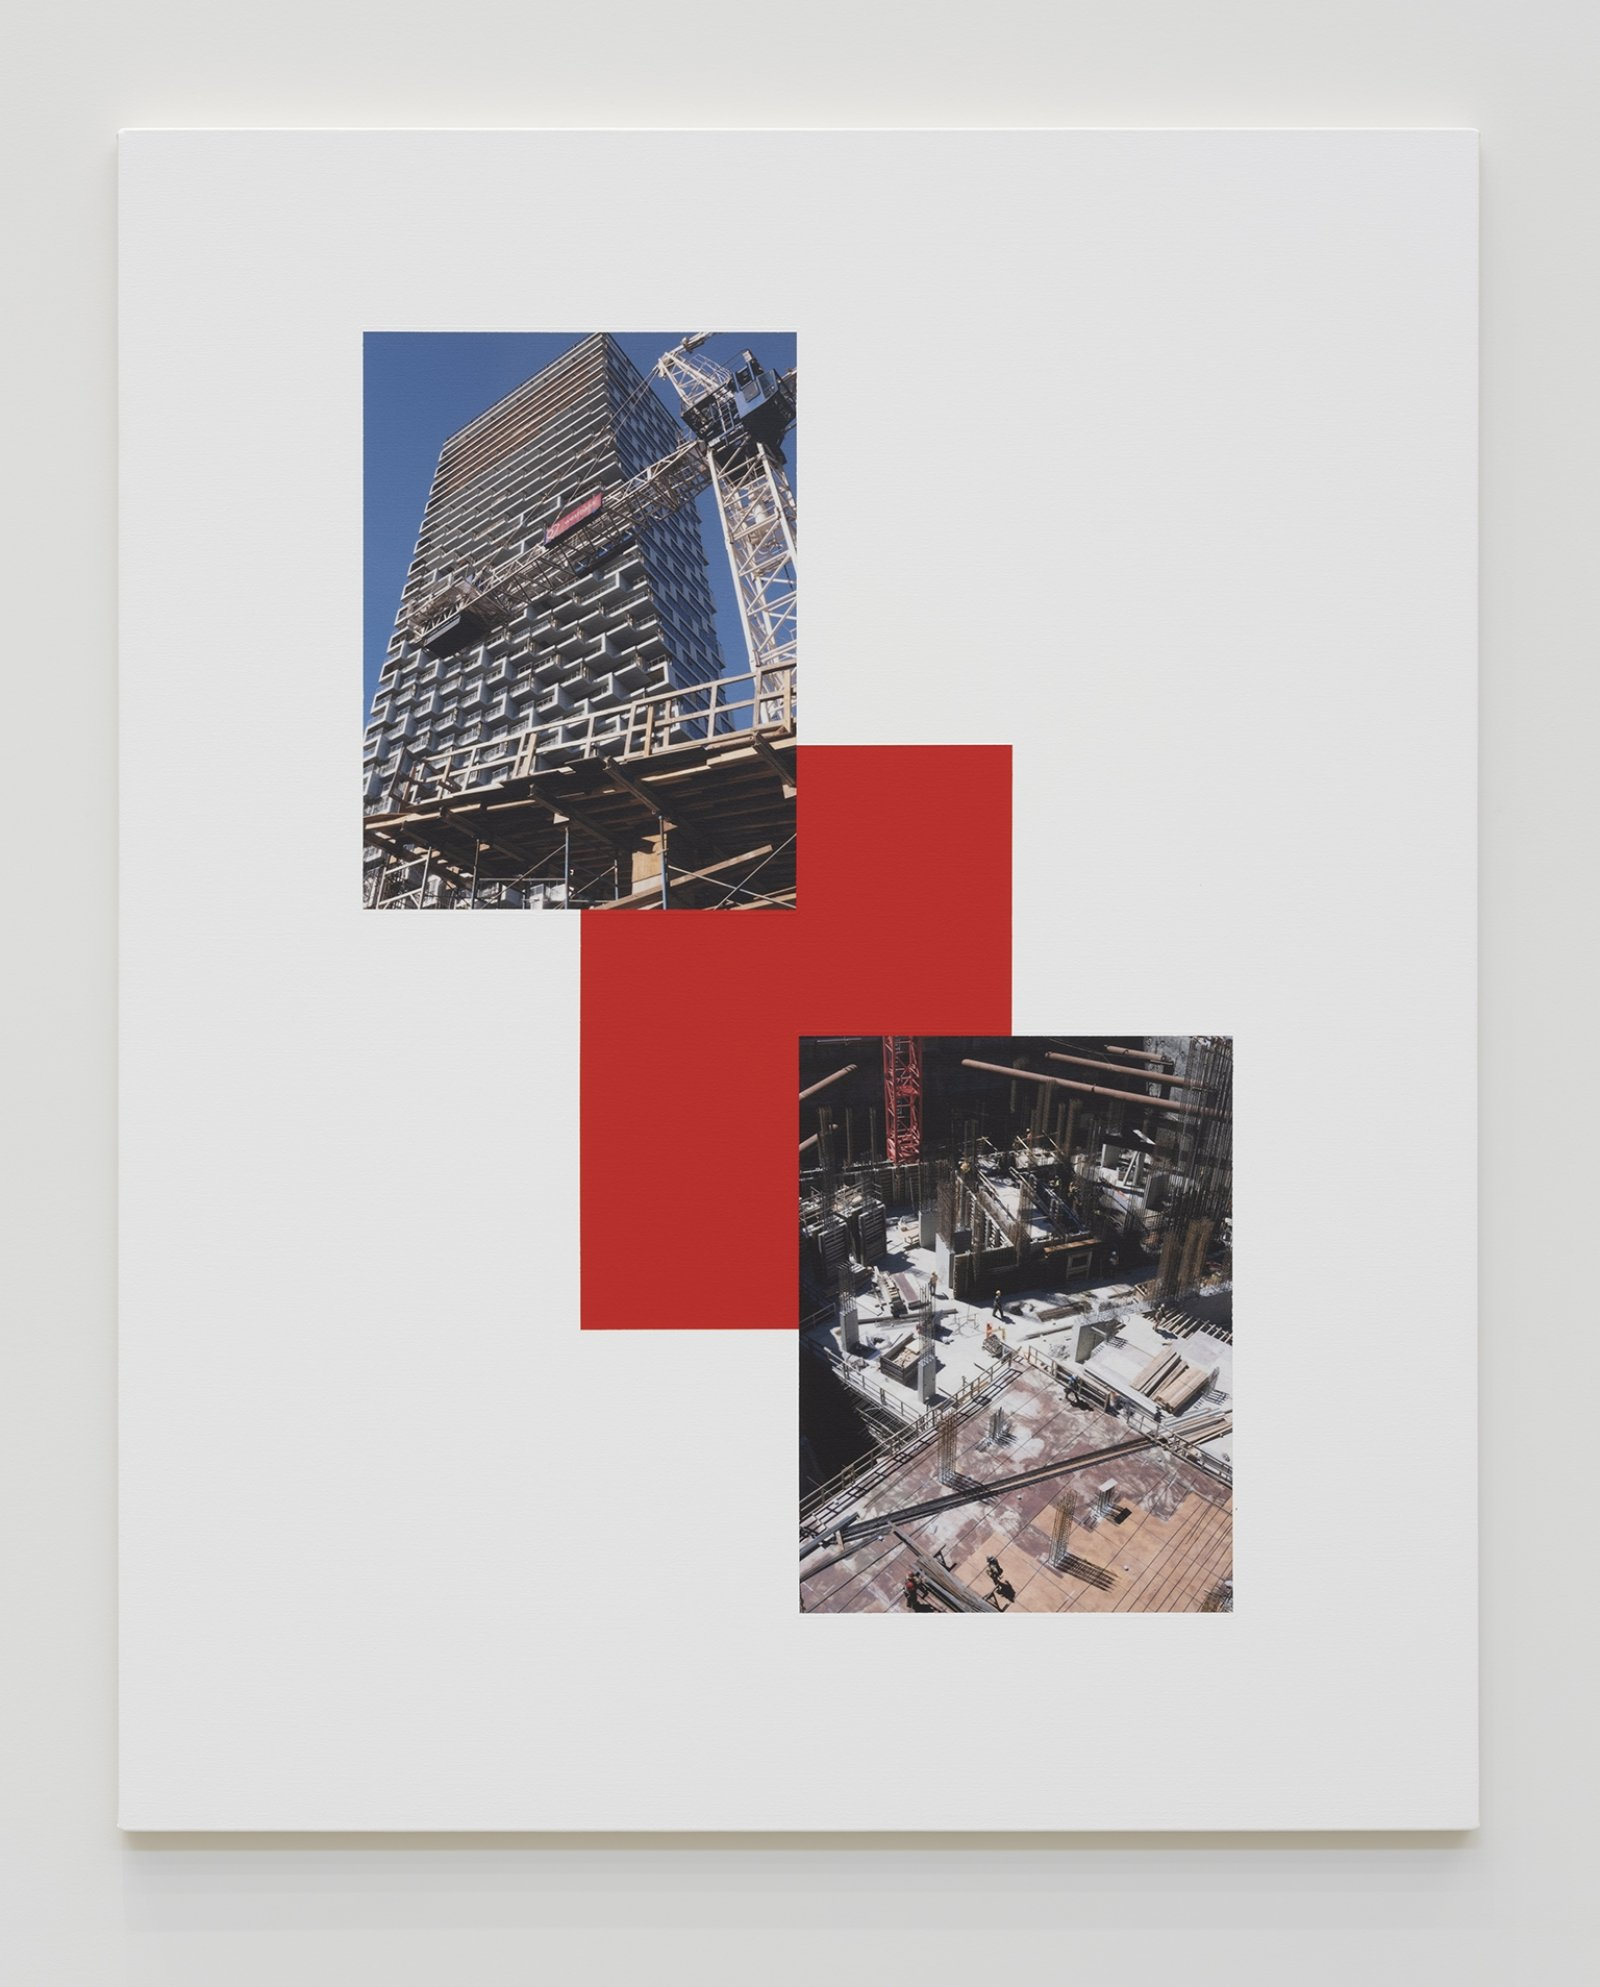 Ian Wallace, Base/Superstructure, (Vancouver House), 2019, photolaminate with acrylic on canvas, 60 x 48 in. (152 x 122 cm)